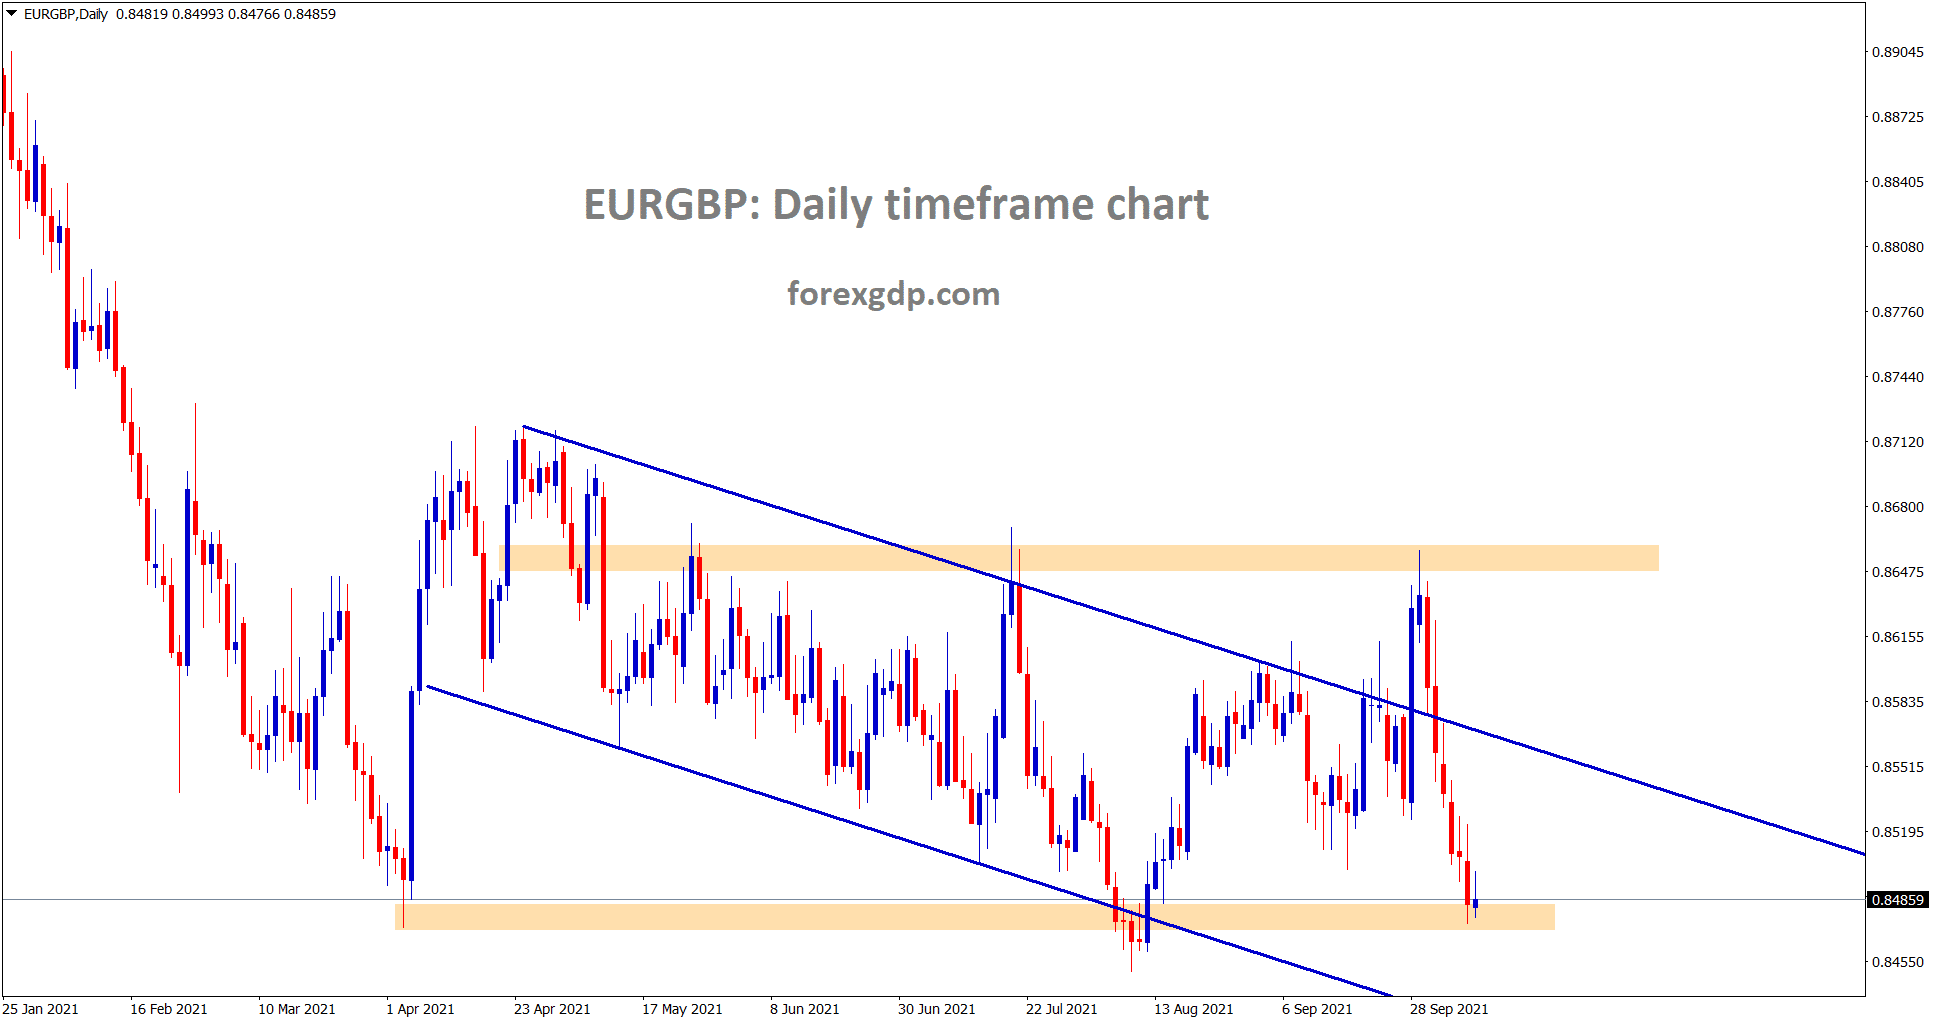 EURGBP is at the horizontal support area